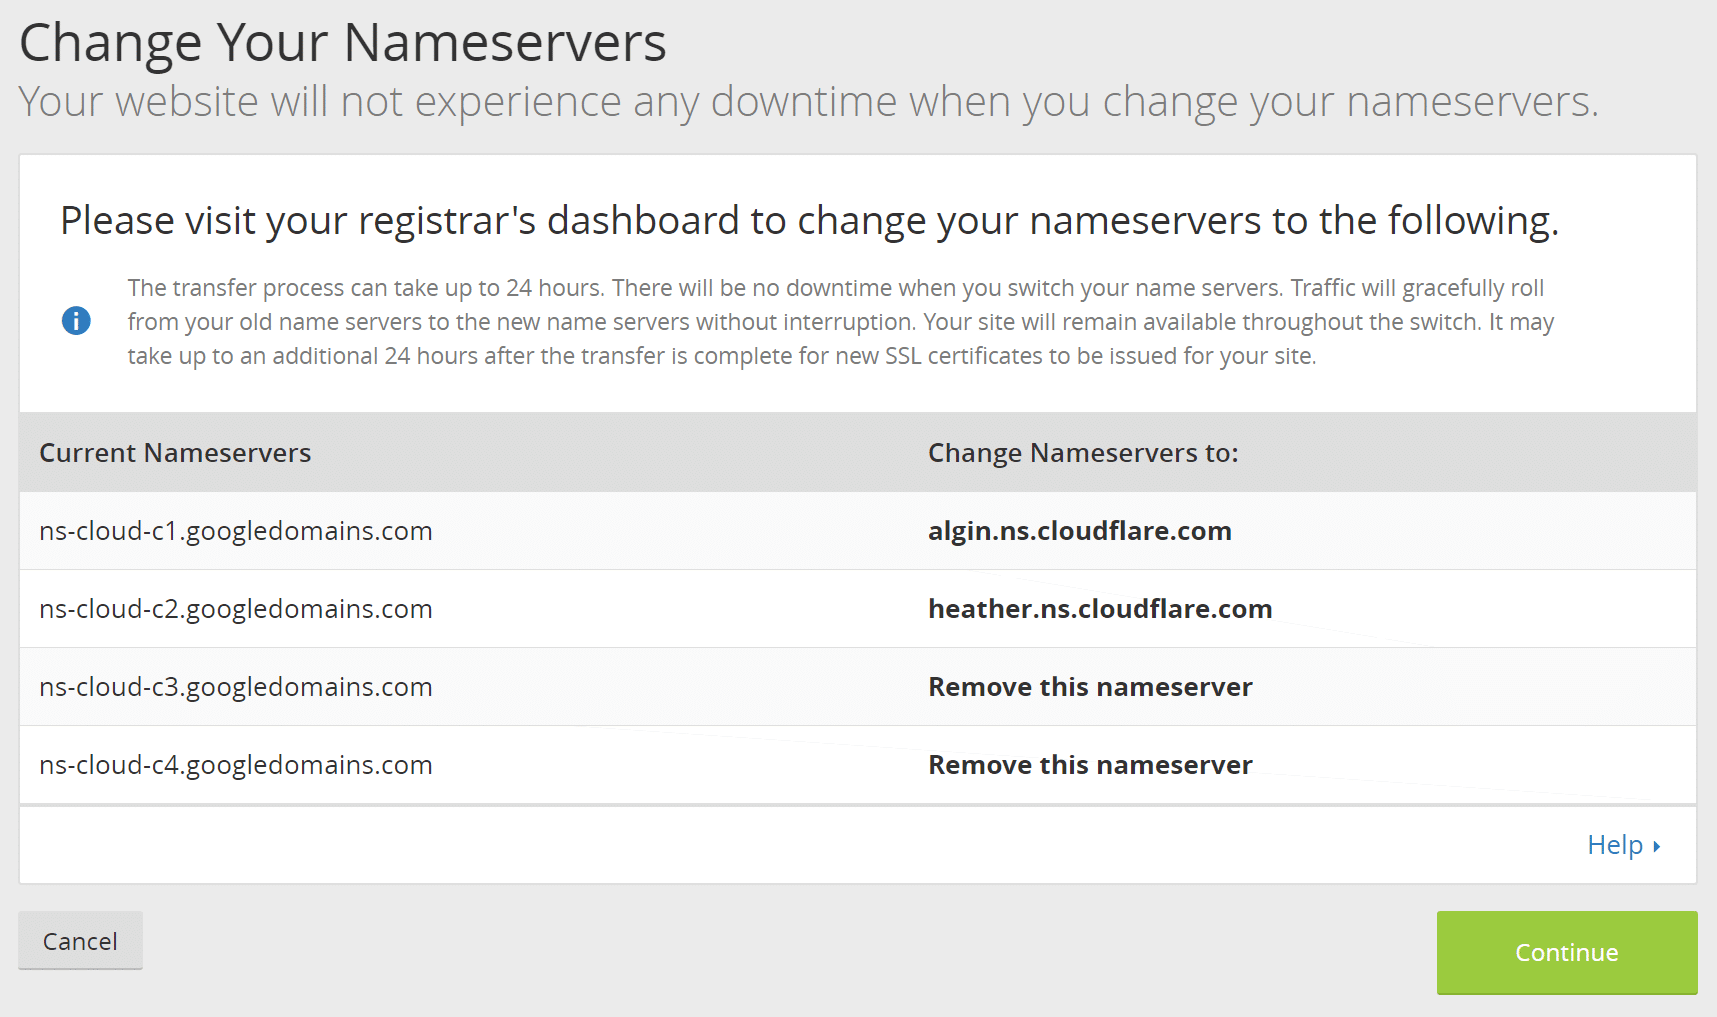 Change nameservers to Cloudflare